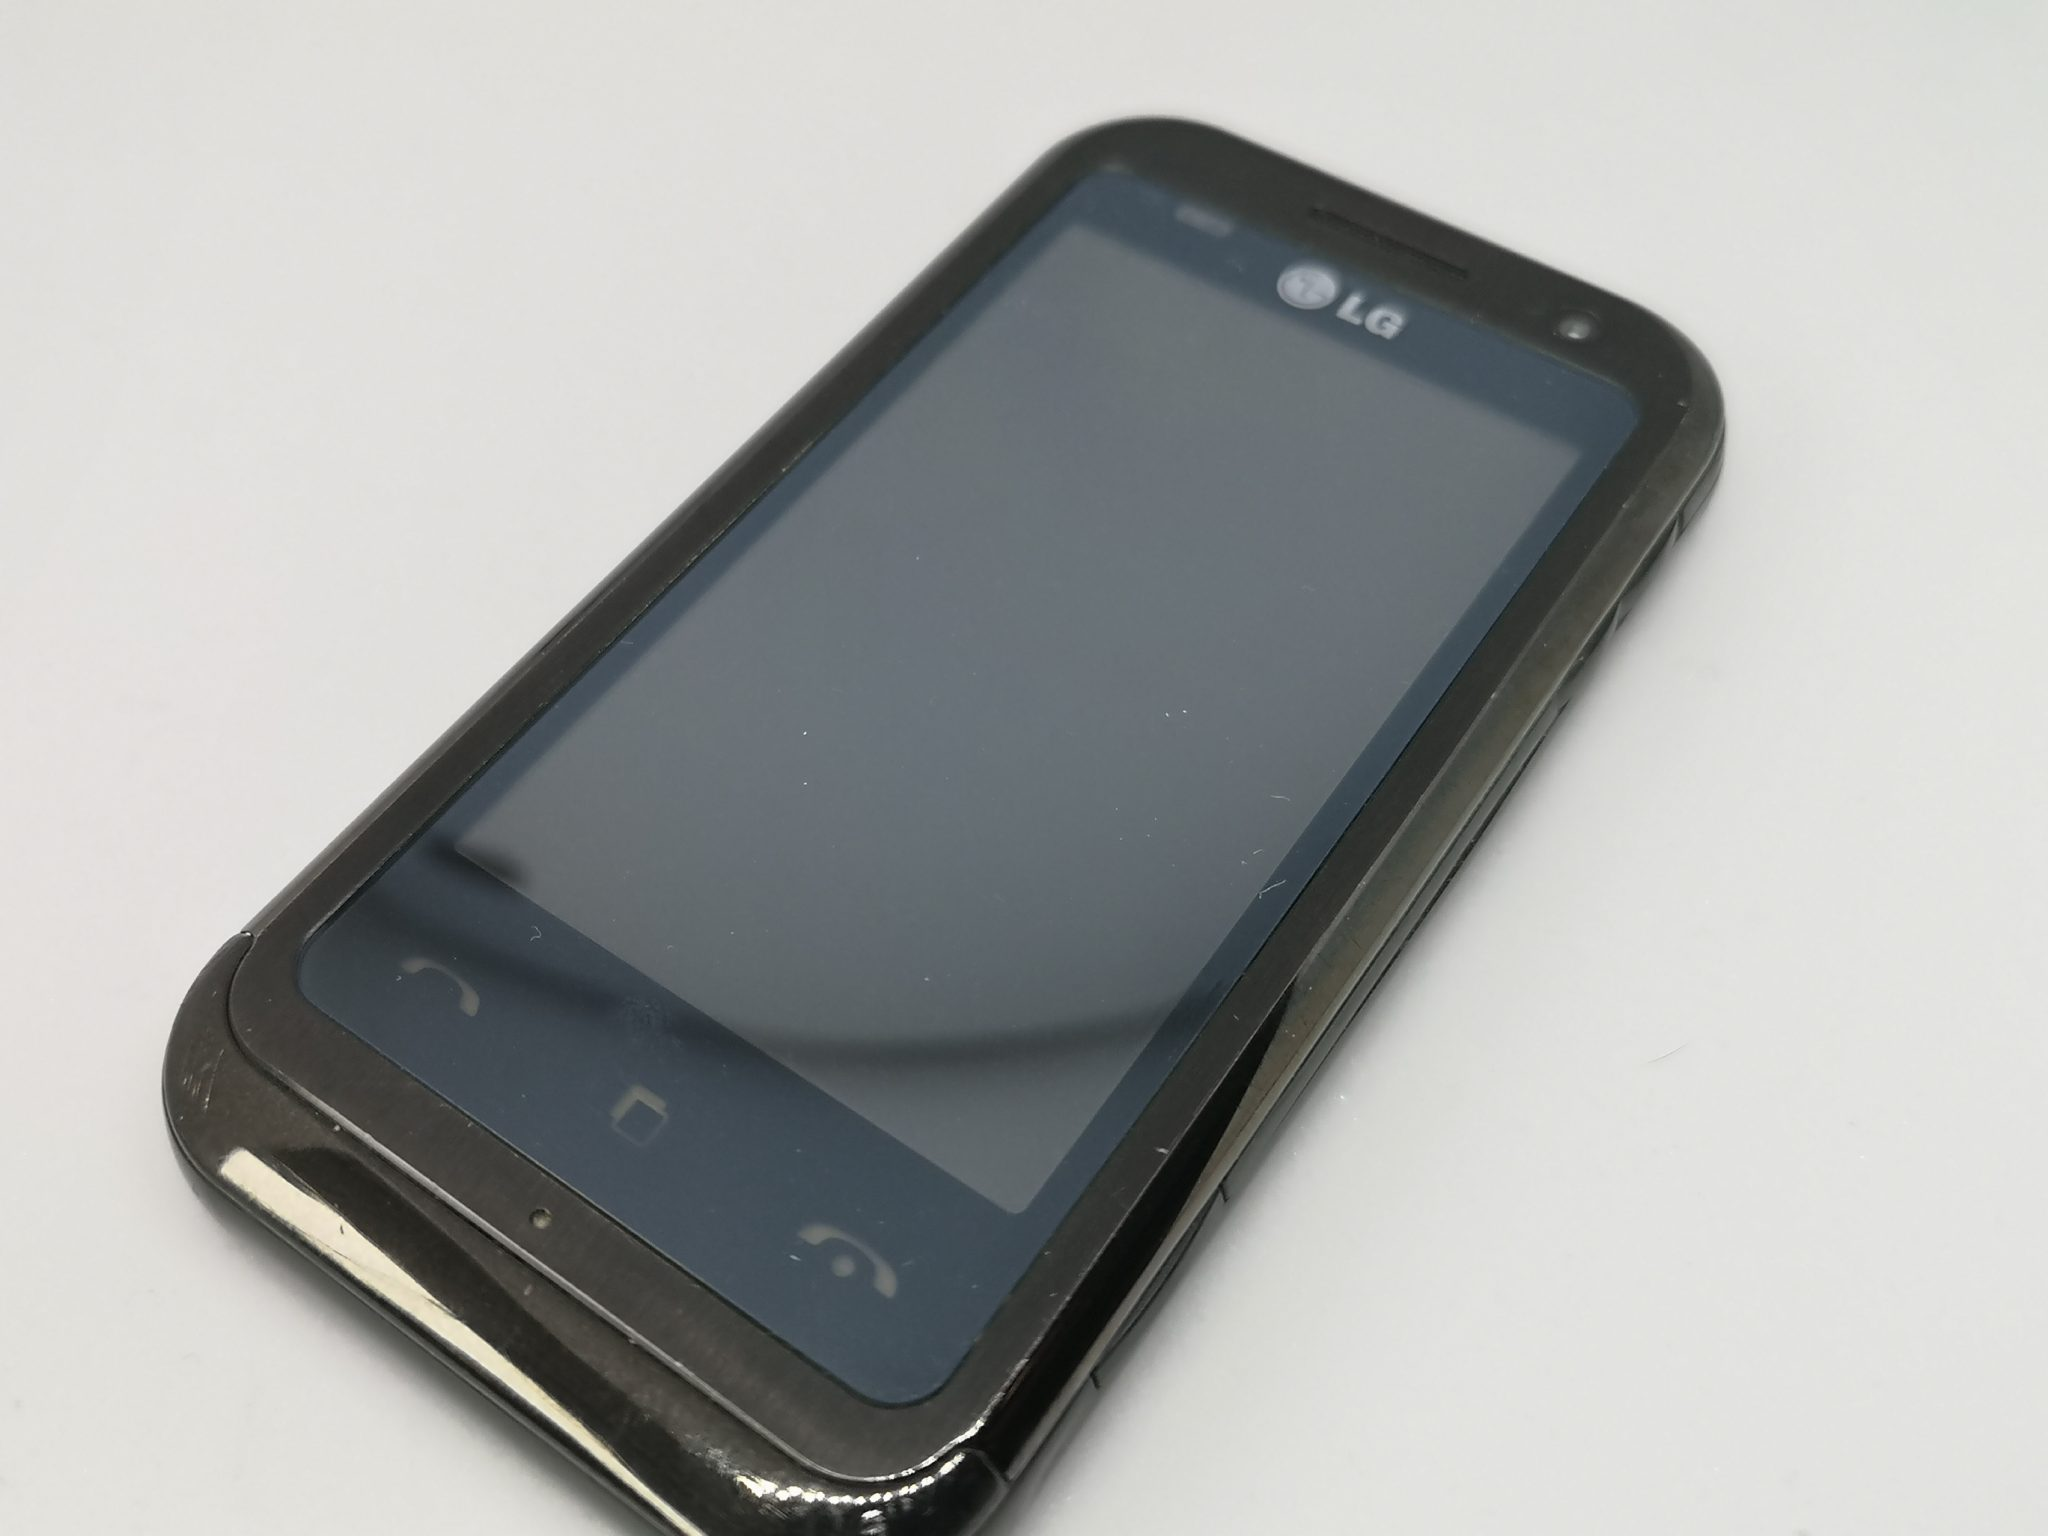 LG KM900 Arena Vintage Mobile Phone Review - Small Screen Touch